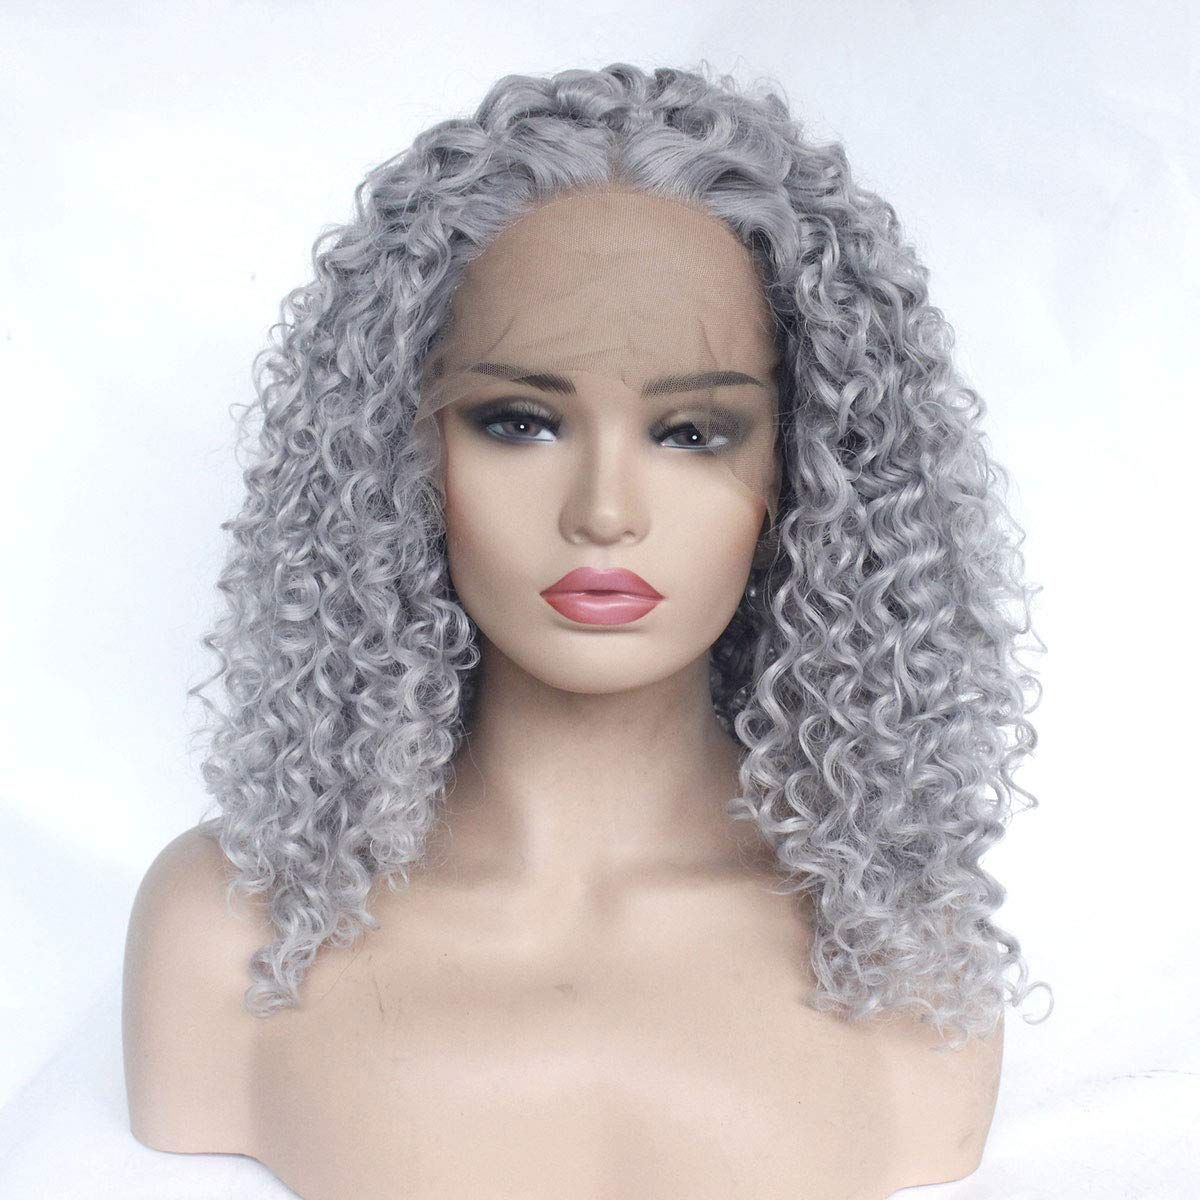 35cm14 inchperfect fit hairlinelooks realno tangledno